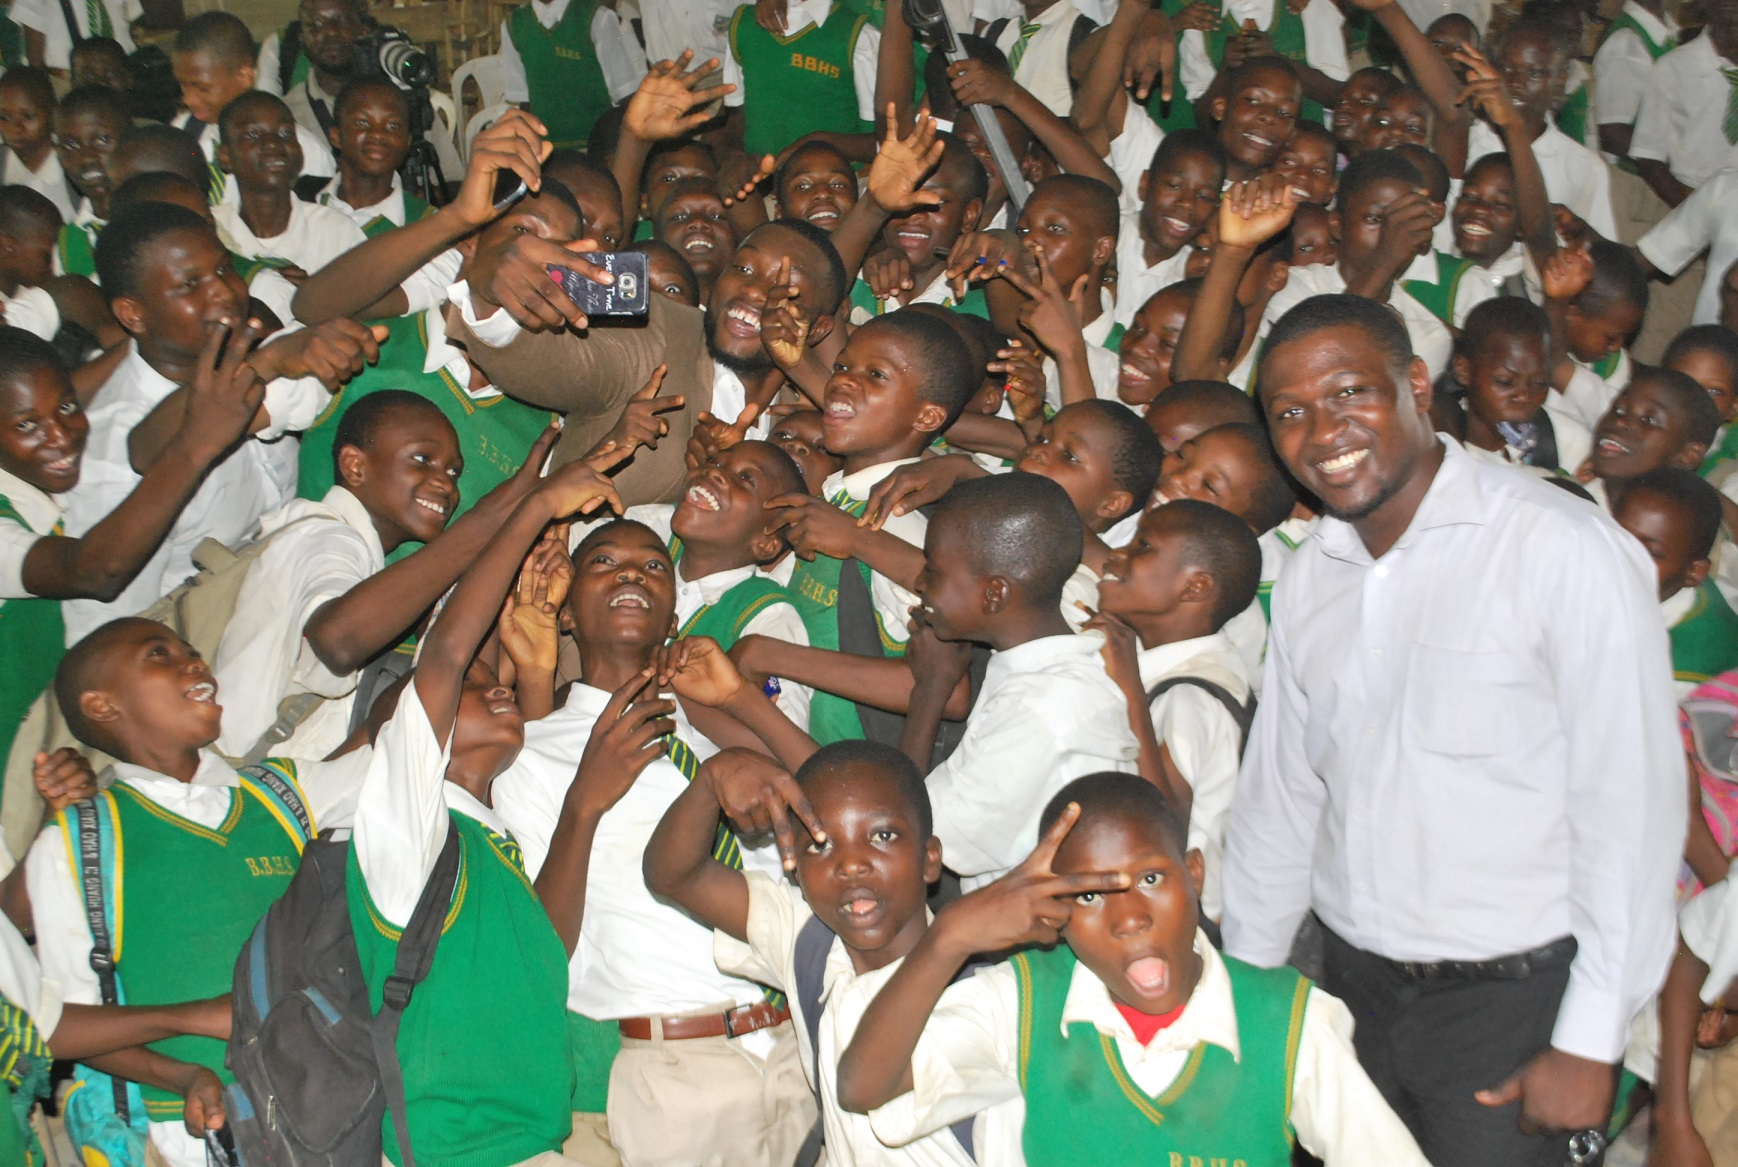 Emmanuel-Ikubueze-taking-a-selfie-with-the-students